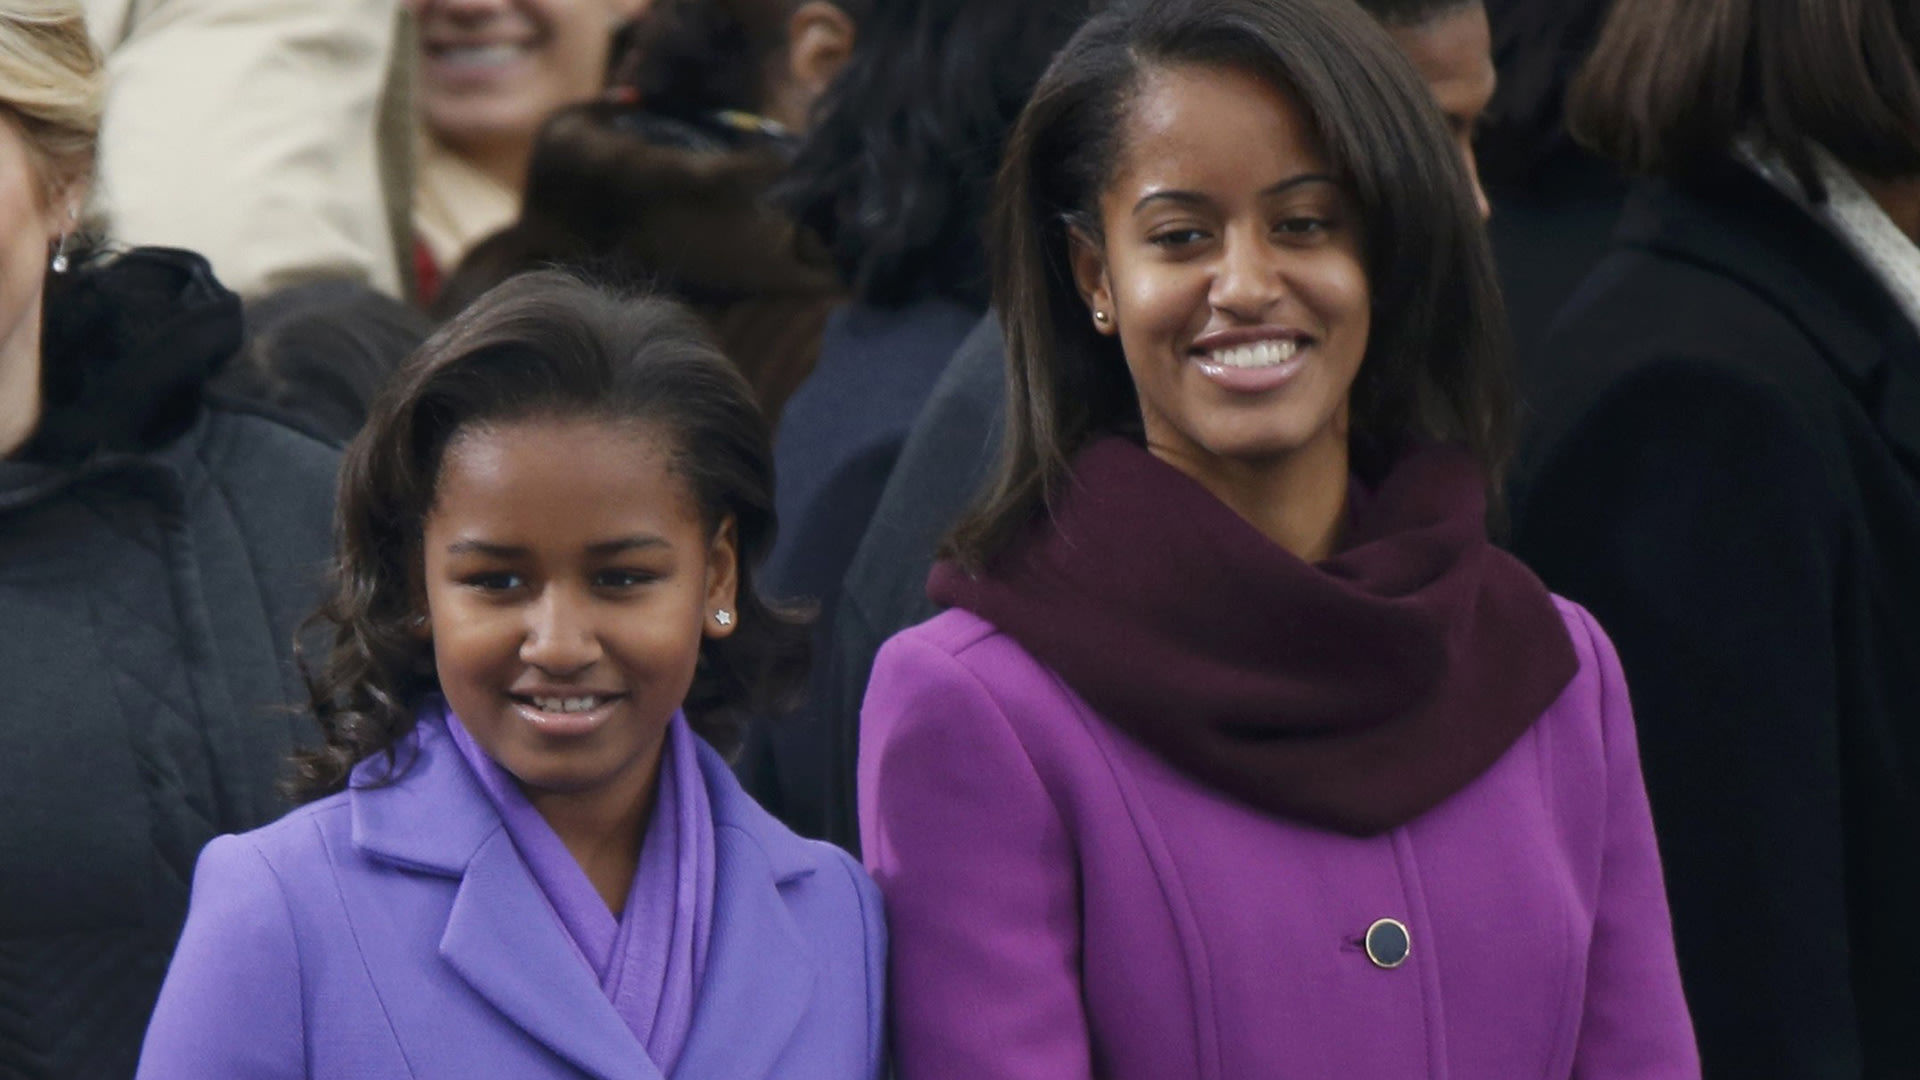 Image: The daughters of President Barack Obama, Sasha and Malia, arrive for the swearing-in ceremonies for their father on the West Front of the U.S. Capitol in Washington